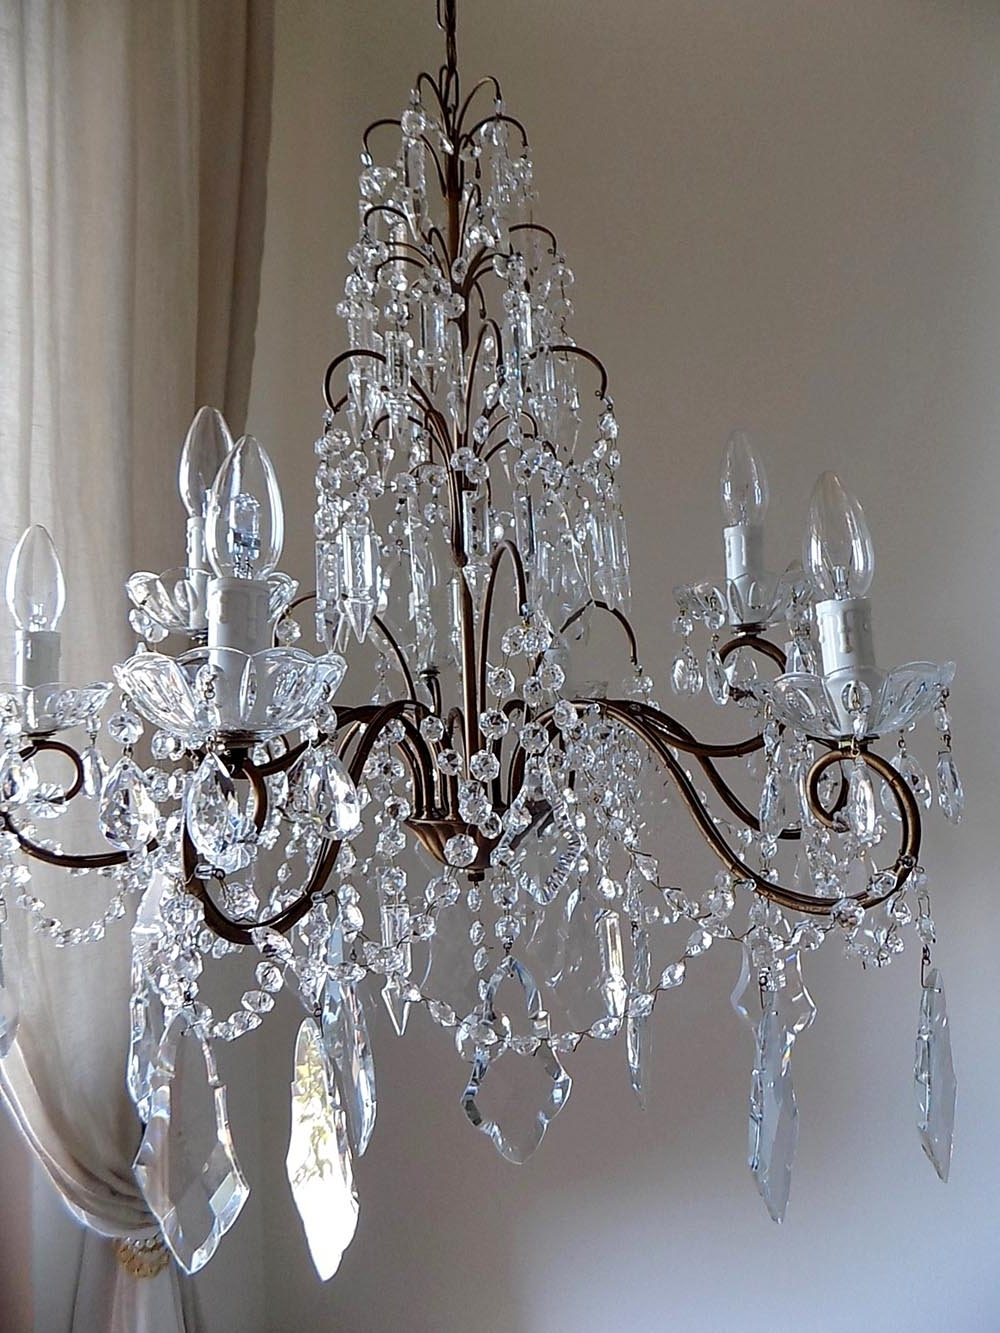 Italian Crystal Chandeliers Antique – Chandelier Designs Within Most Recent Vintage Italian Chandeliers (View 13 of 15)